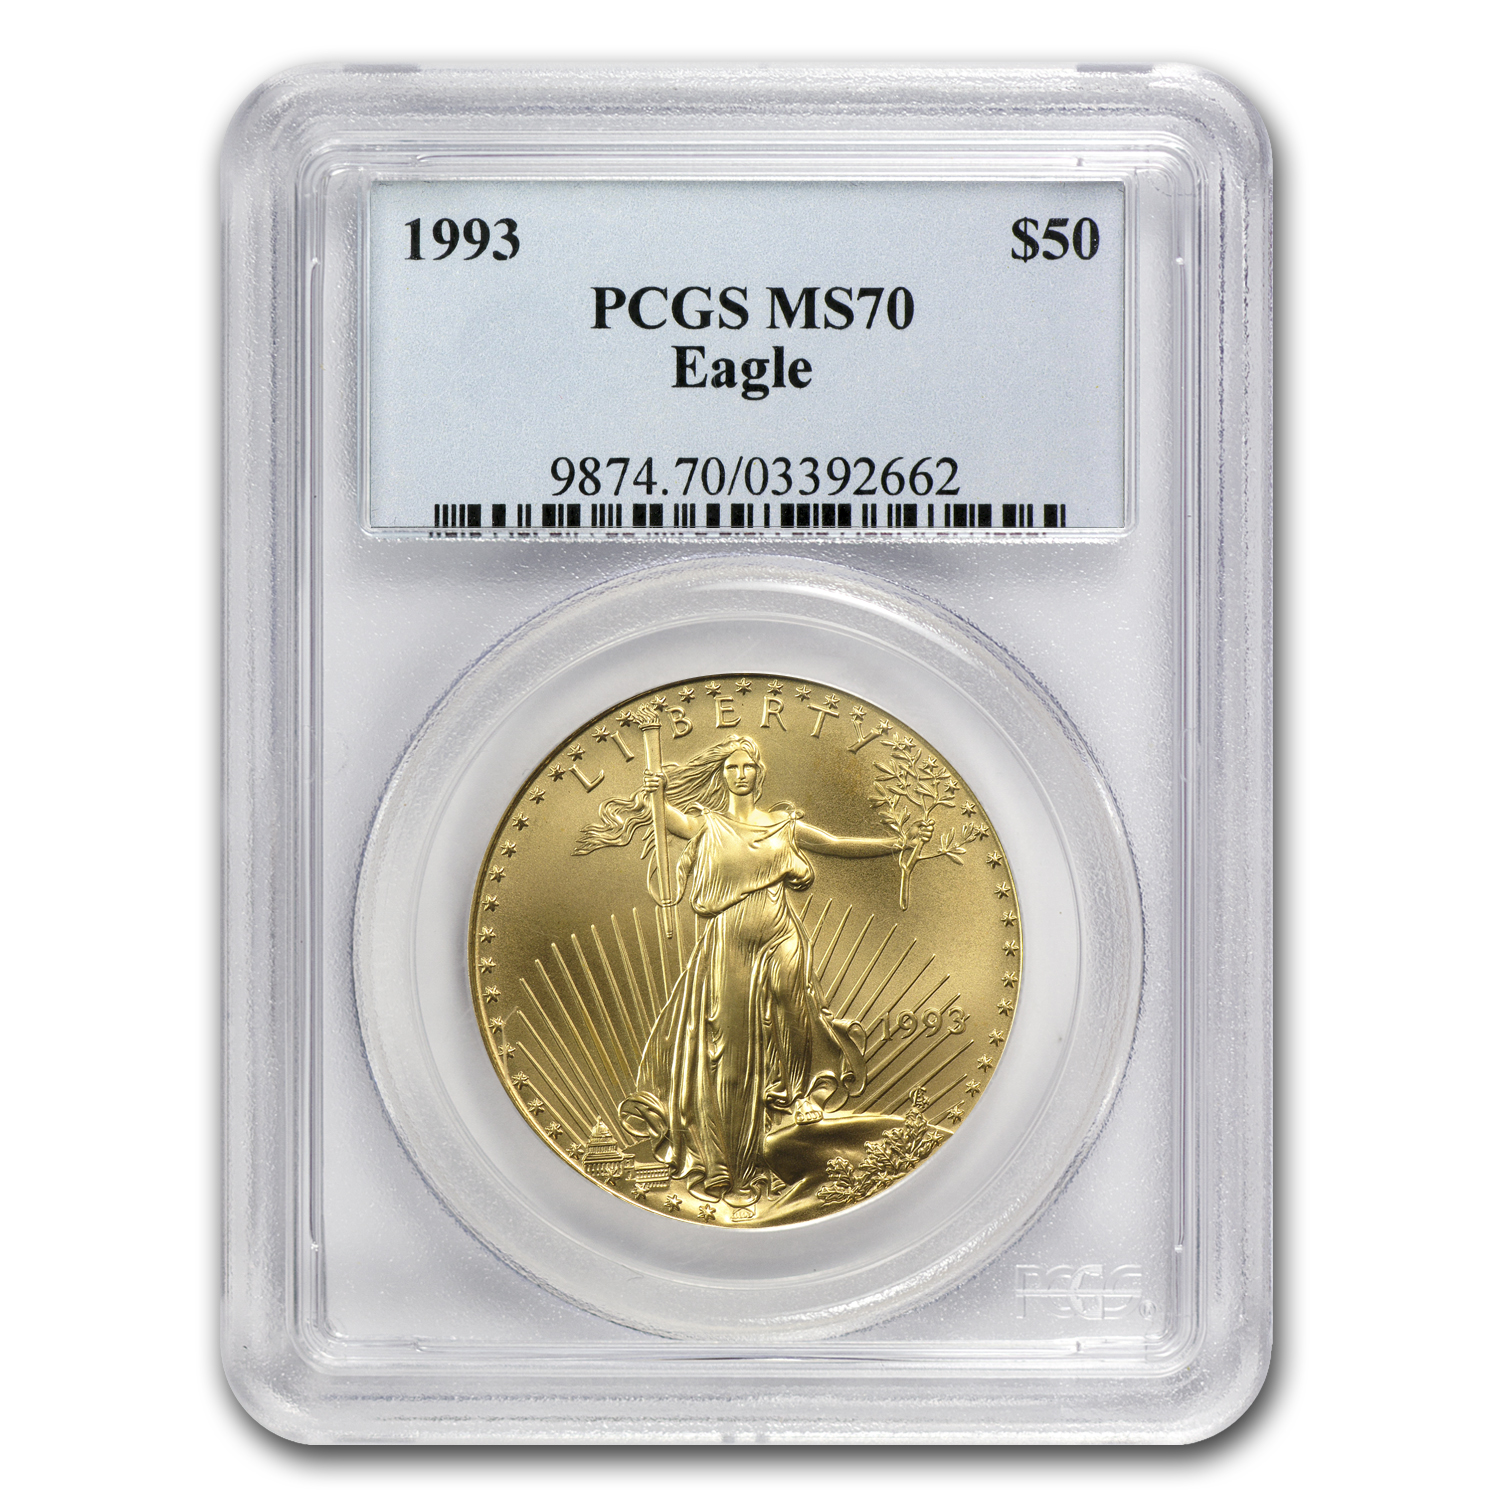 1993 1 oz Gold American Eagle MS-70 PCGS (Registry Coin)